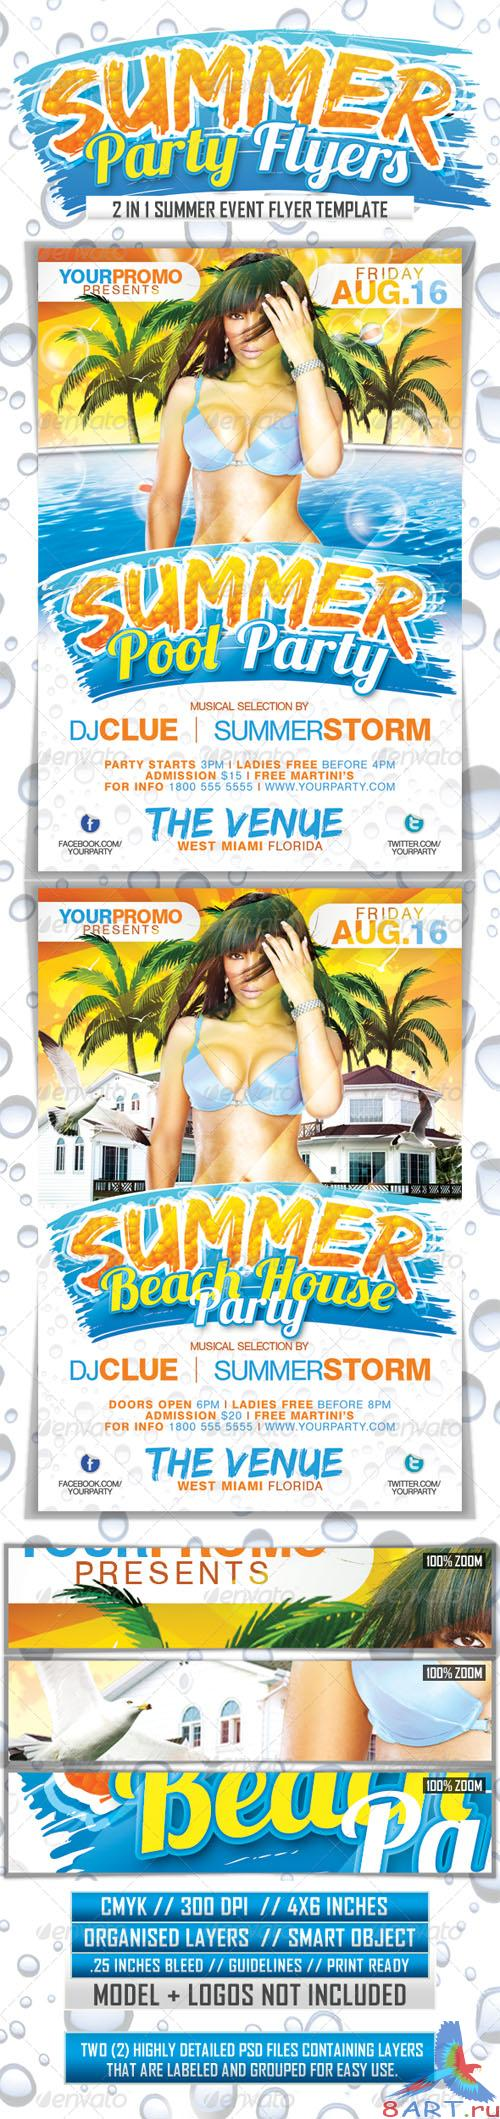 GraphicRiver - Summer Party Flyers 2529632